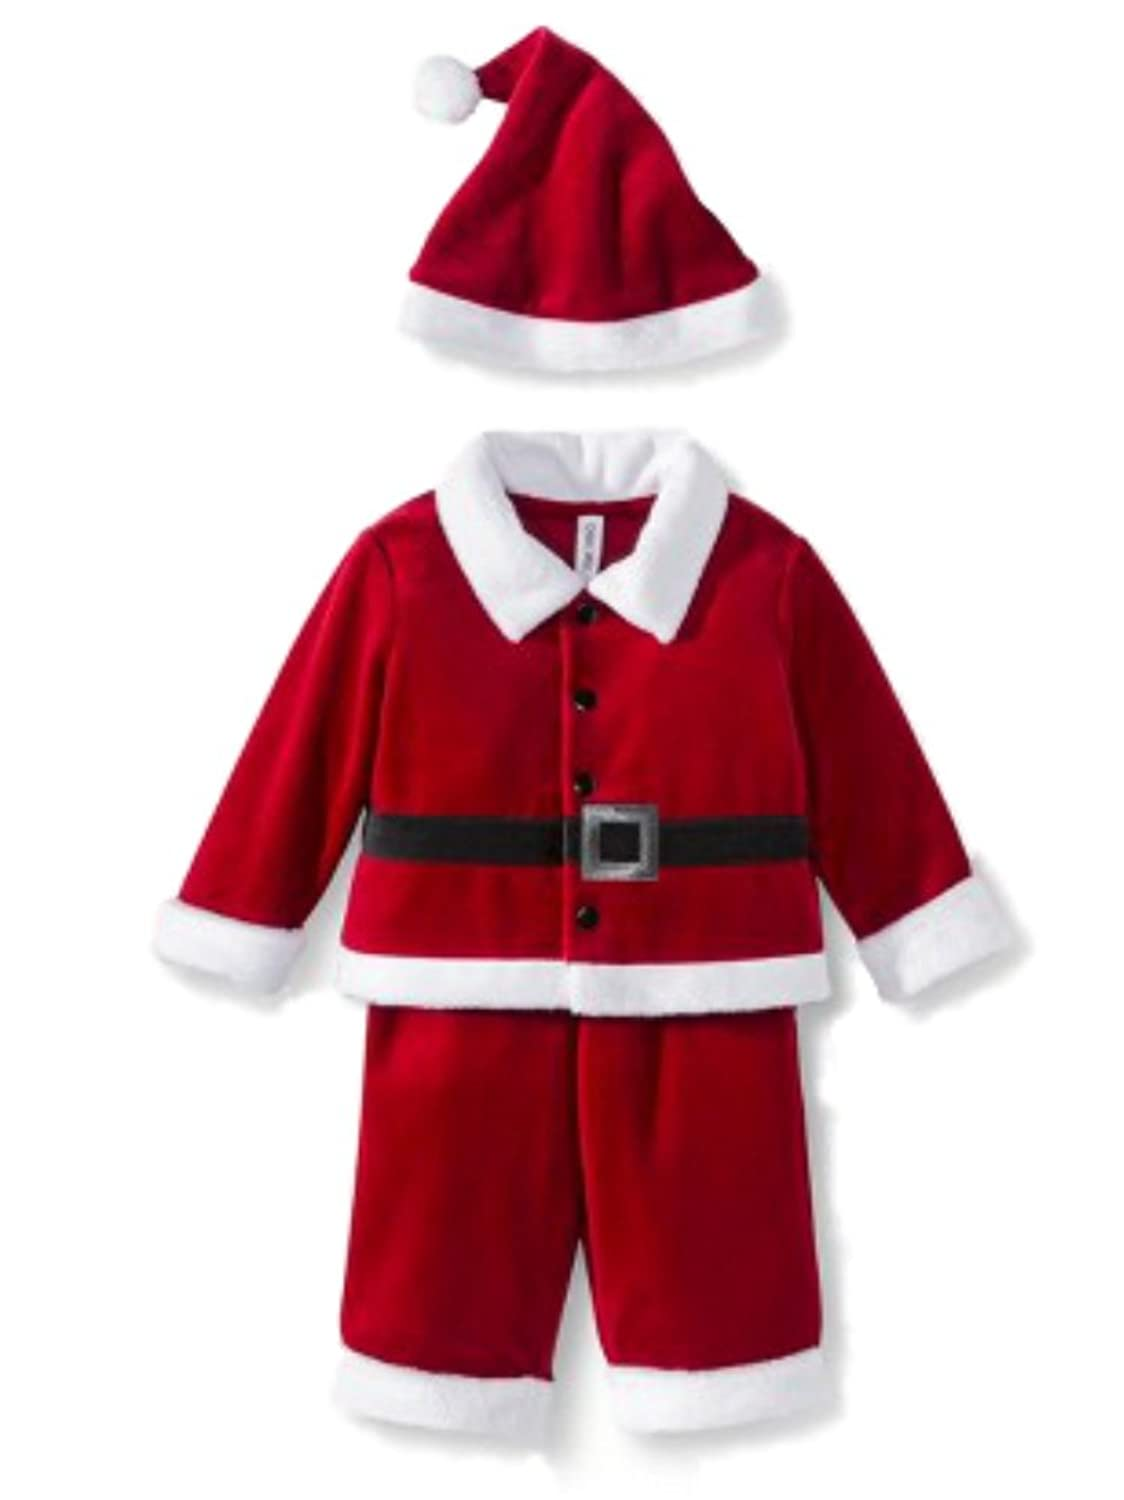 amazoncom cherokee infant boys girls red velvet santa suit christmas hat clothing